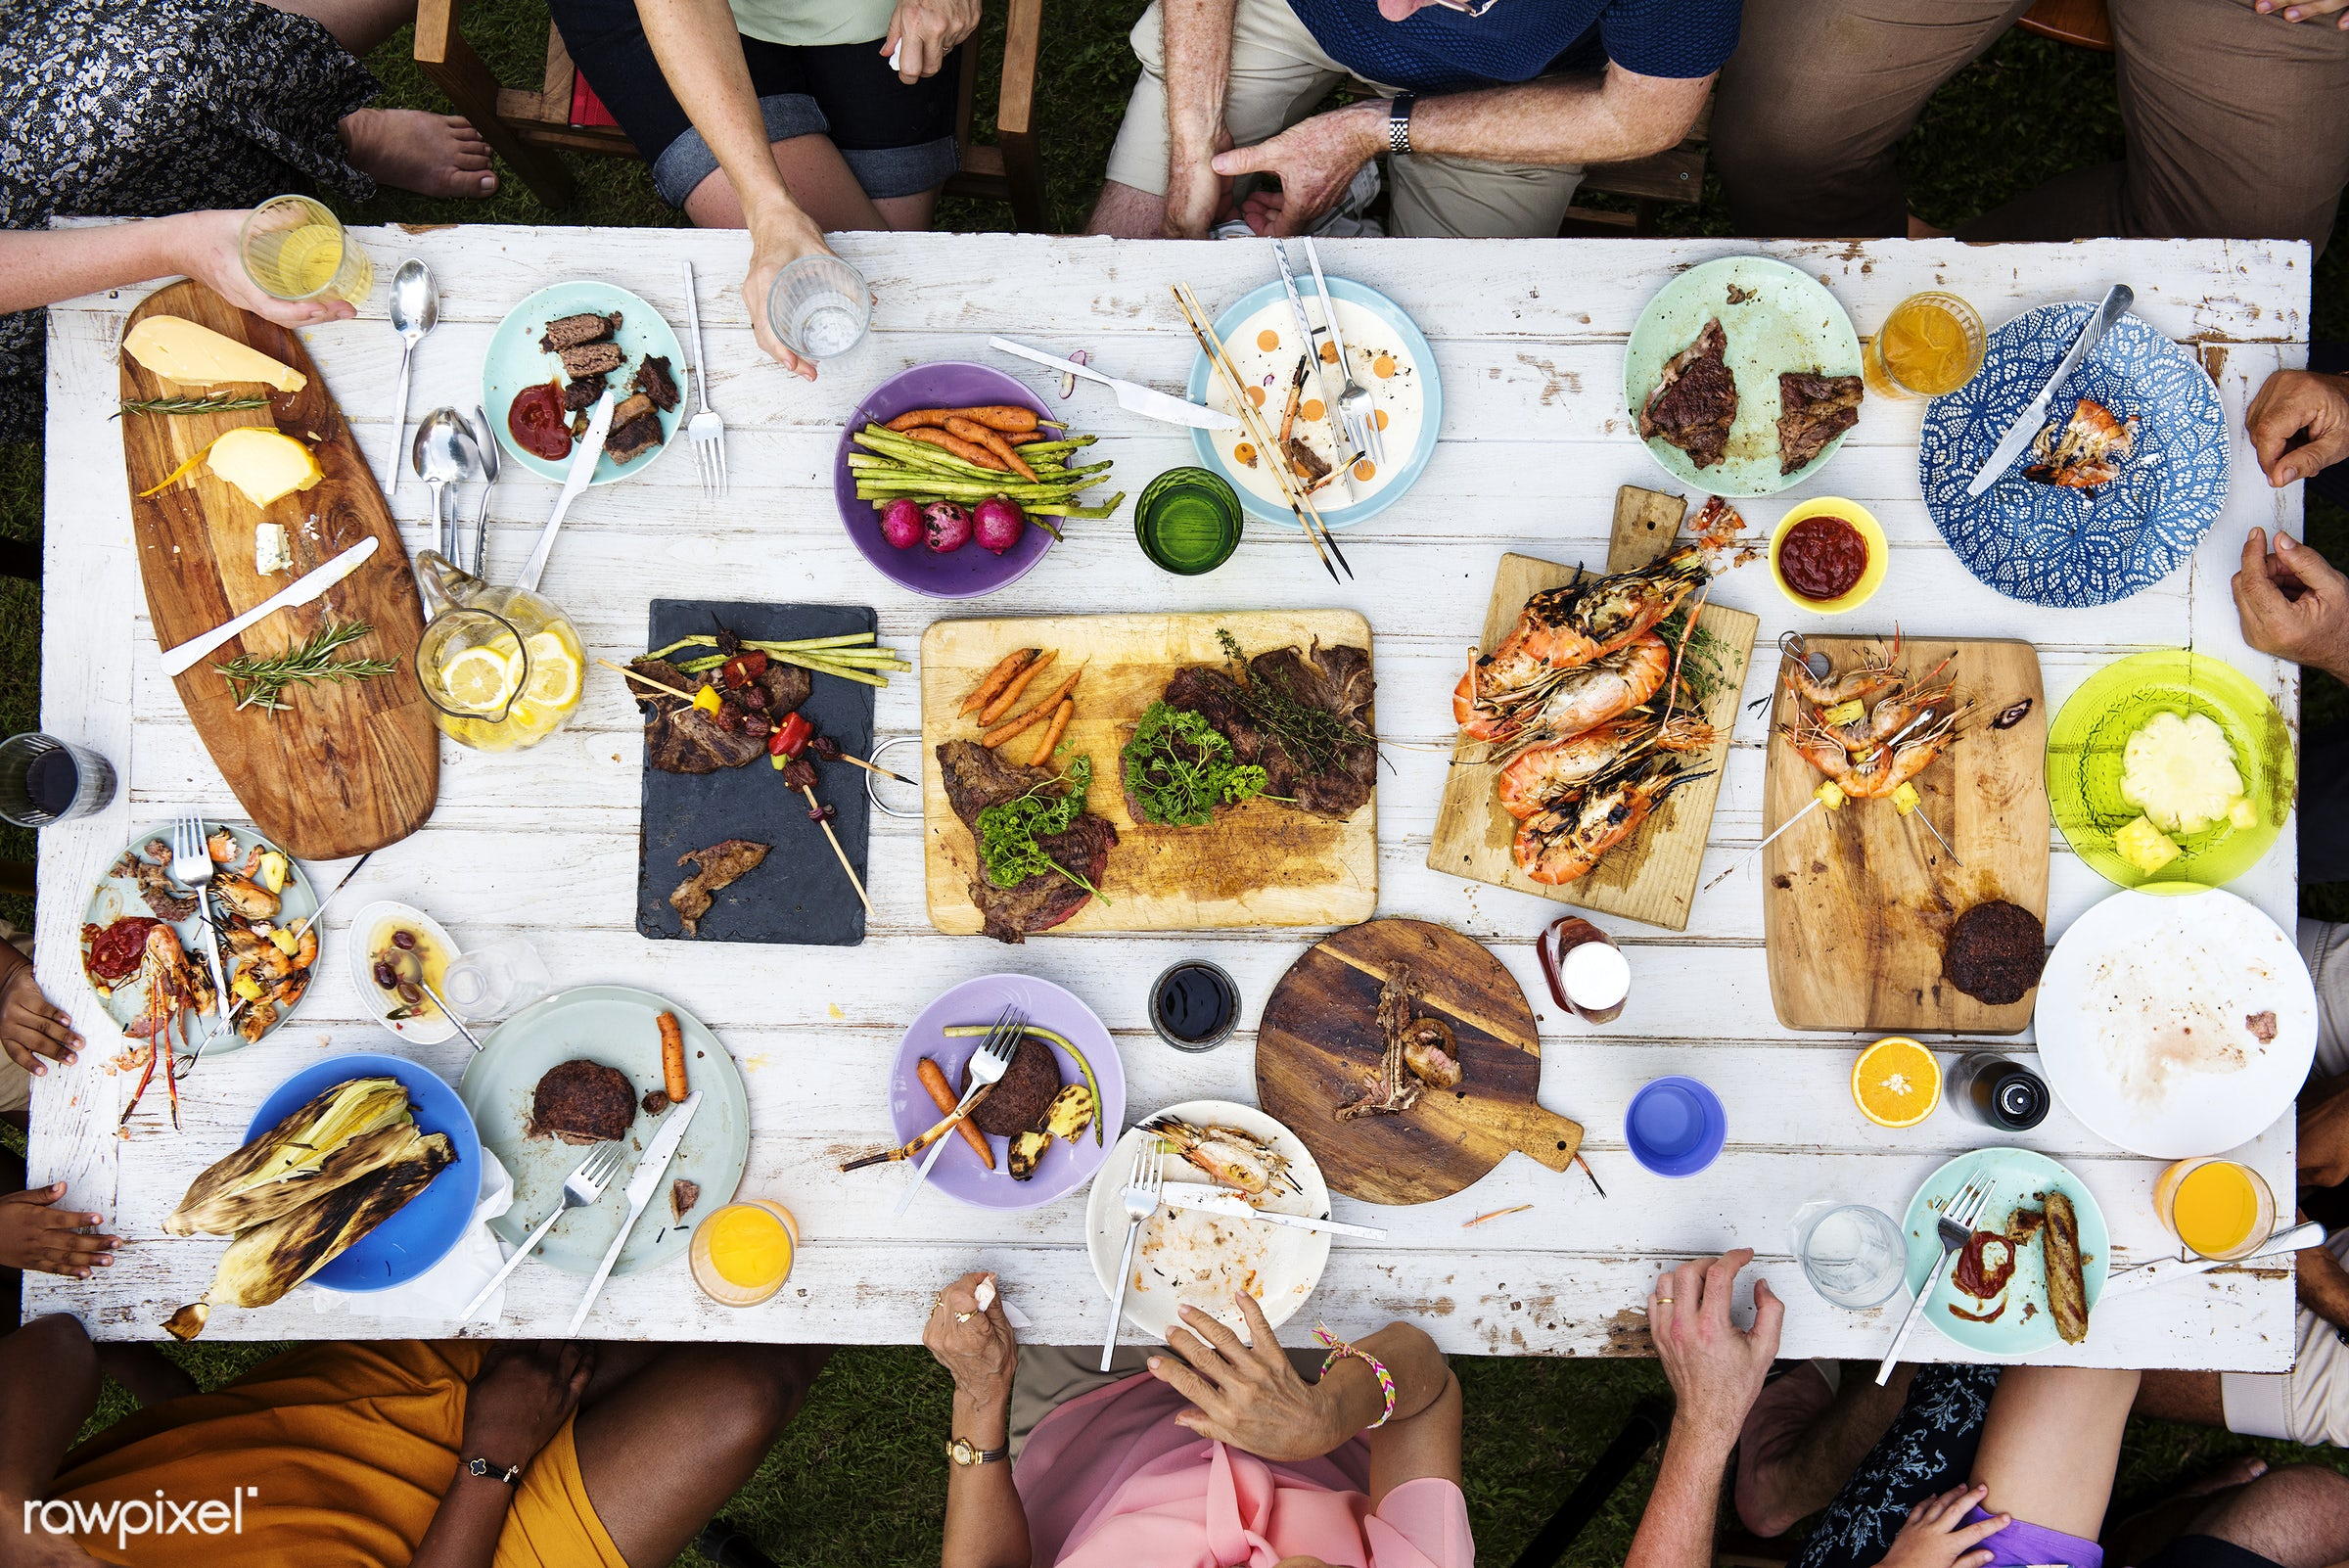 cuisine, diverse, homemade, party, together, friends, hands, juice, gathering, lunch, aerial view, meal, beverage, seafood,...